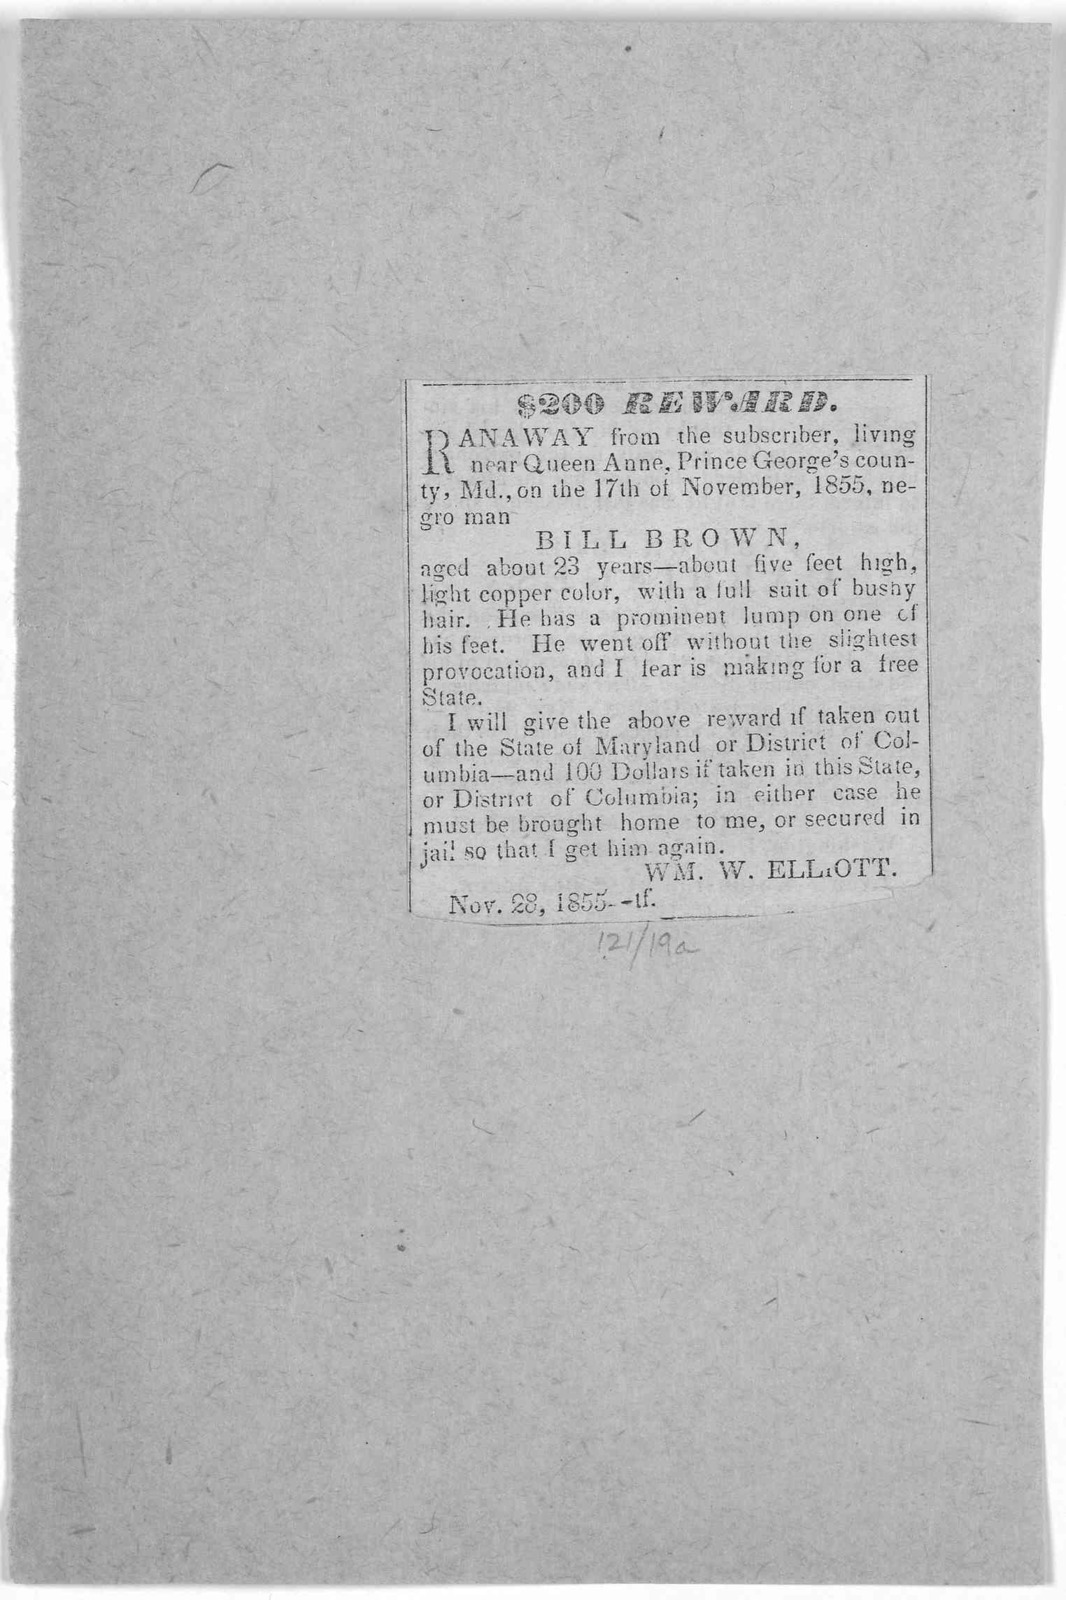 $200 reward. Ranaway from the subscriber, living near Queen Anne, Prince George's country, Md., on the 17th of November, 1855, negro man Bill Brown ... Wm. W. Elliot. Nov. 28, 1855.